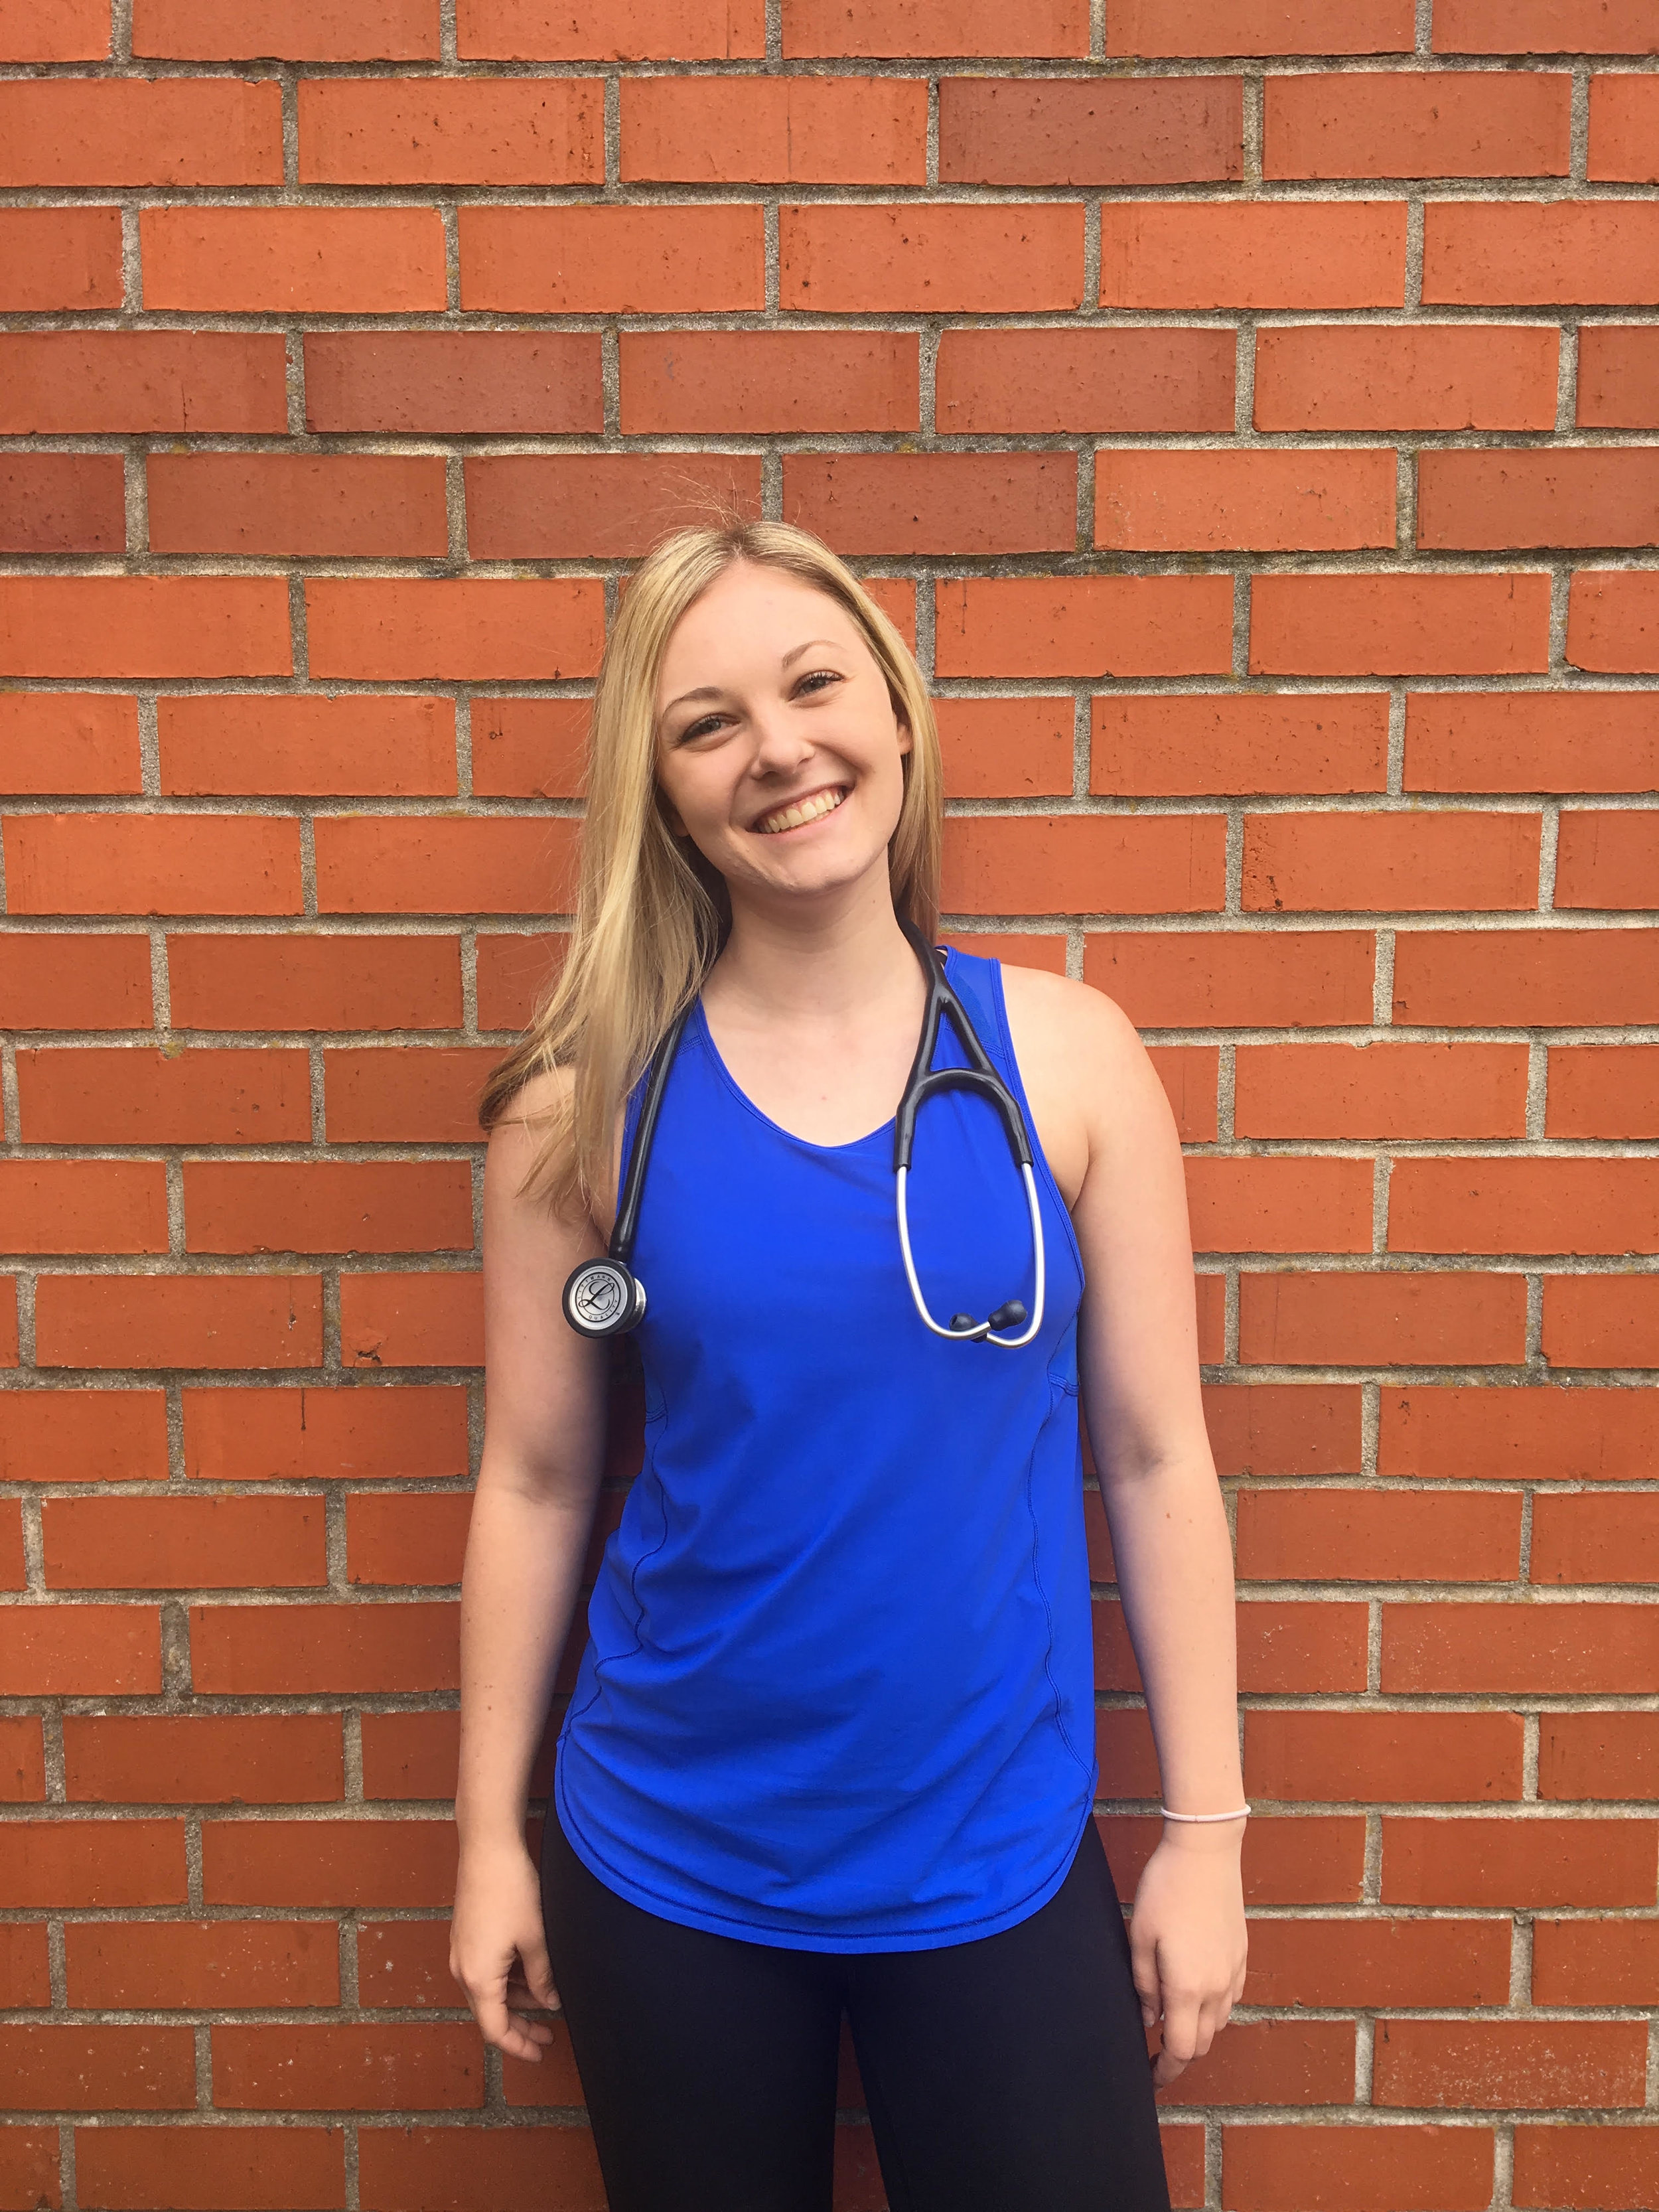 """I want to be the doctor I wish I had as an athlete"" - Larissa, 3rd Year Boucher Student  My story stems from my competitive figure skating career. This was my first LOVE! Unfortunately, low back pain & chronic groin tears became too overwhelming and I was forced to retire from the sport. What I didn't know was that my life after sport would be such a struggle. At 21 years old I was unable able to walk, sleep, and do every day activities without that nagging injury getting in my way. After years of chronic pain and many specialists, a wonderful naturopathic doctor solved what many others could not and taught me that much of my pain & injuries could have been prevented. She inspired me to follow in her foot steps so I can prevent others from experiencing the hard times I went through."